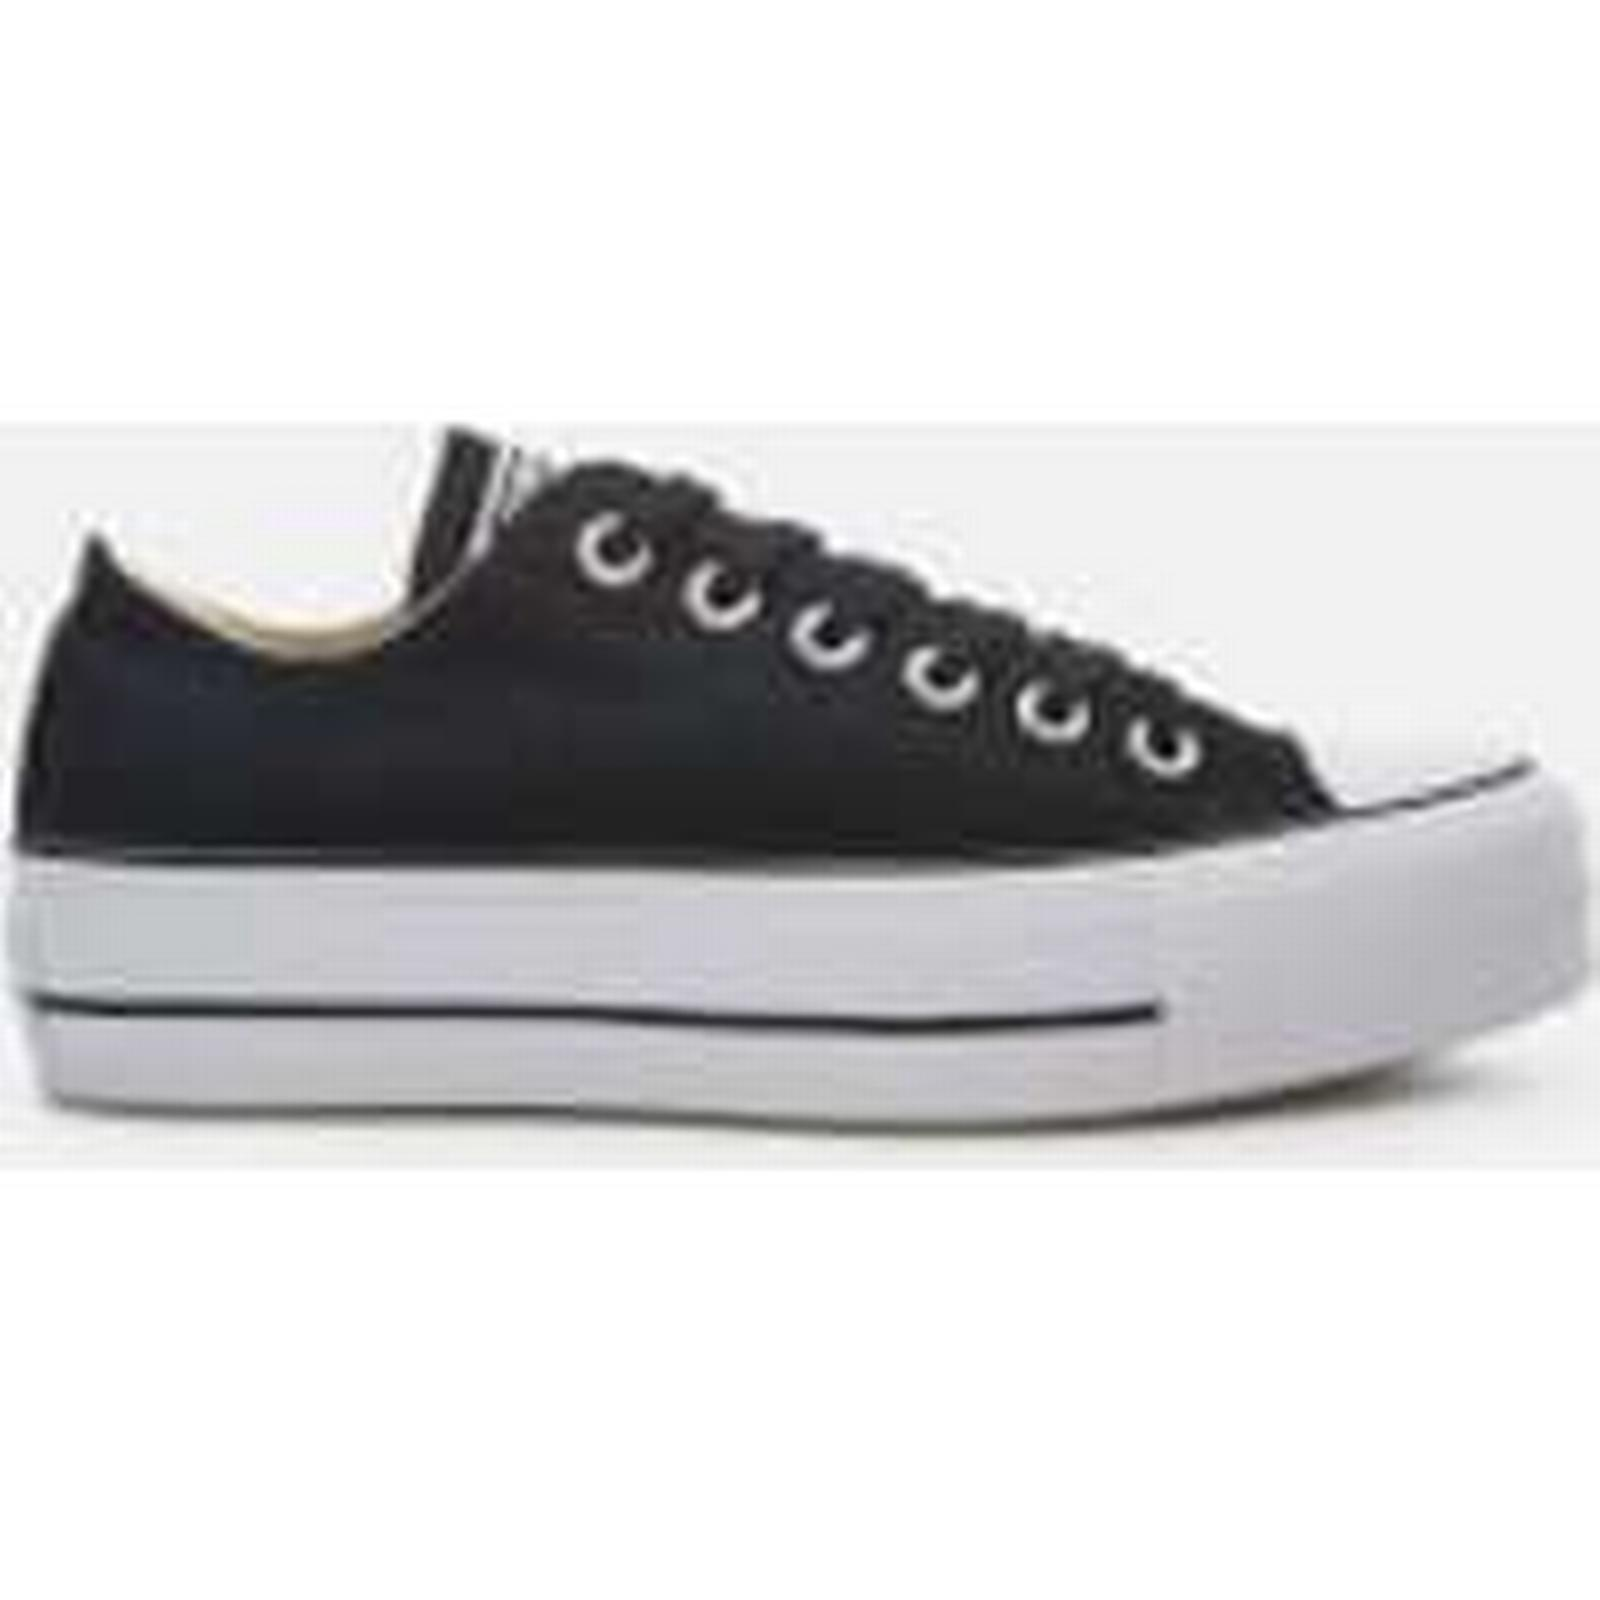 Converse Women's Chuck Taylor Trainers All Star Lift Ox Trainers Taylor - Black/White - UK 4 - Black eeecc6